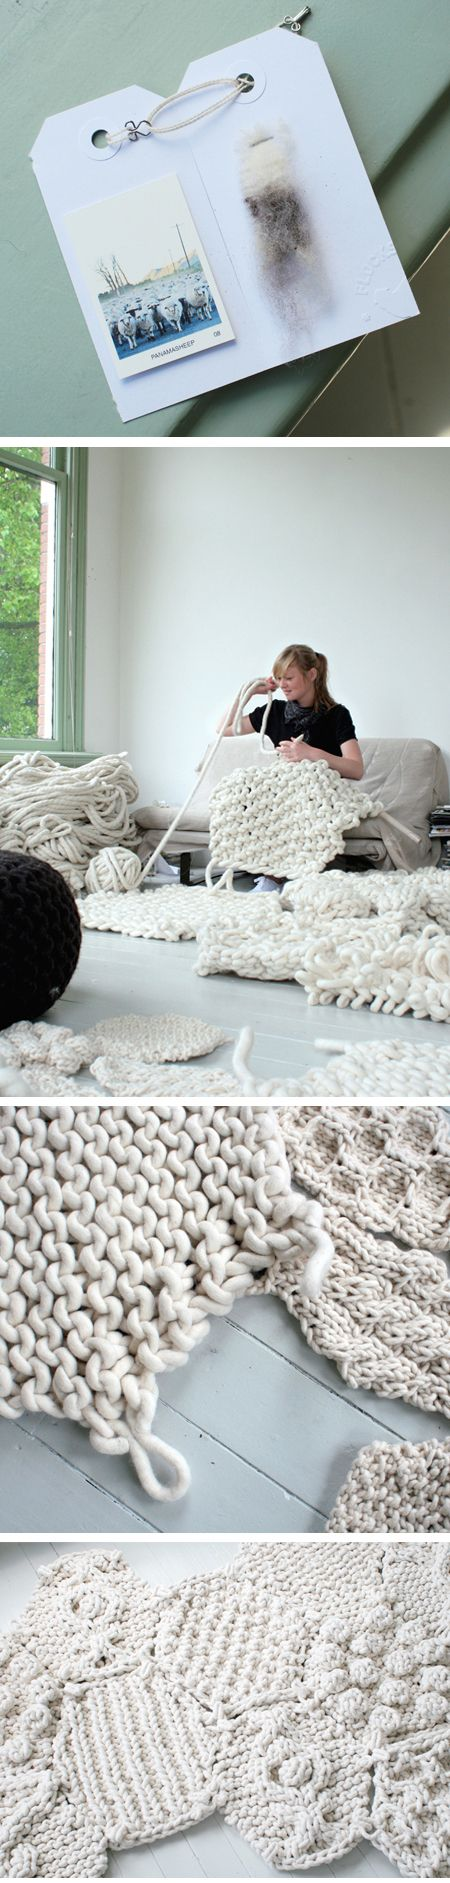 christienmeindertsma.... a recent obsession with knitting giant things with giant yarn.  Check out the article on the blog about a rug project using super bulky wool made from the wool of a single flock of sheep, one sheep at a time.